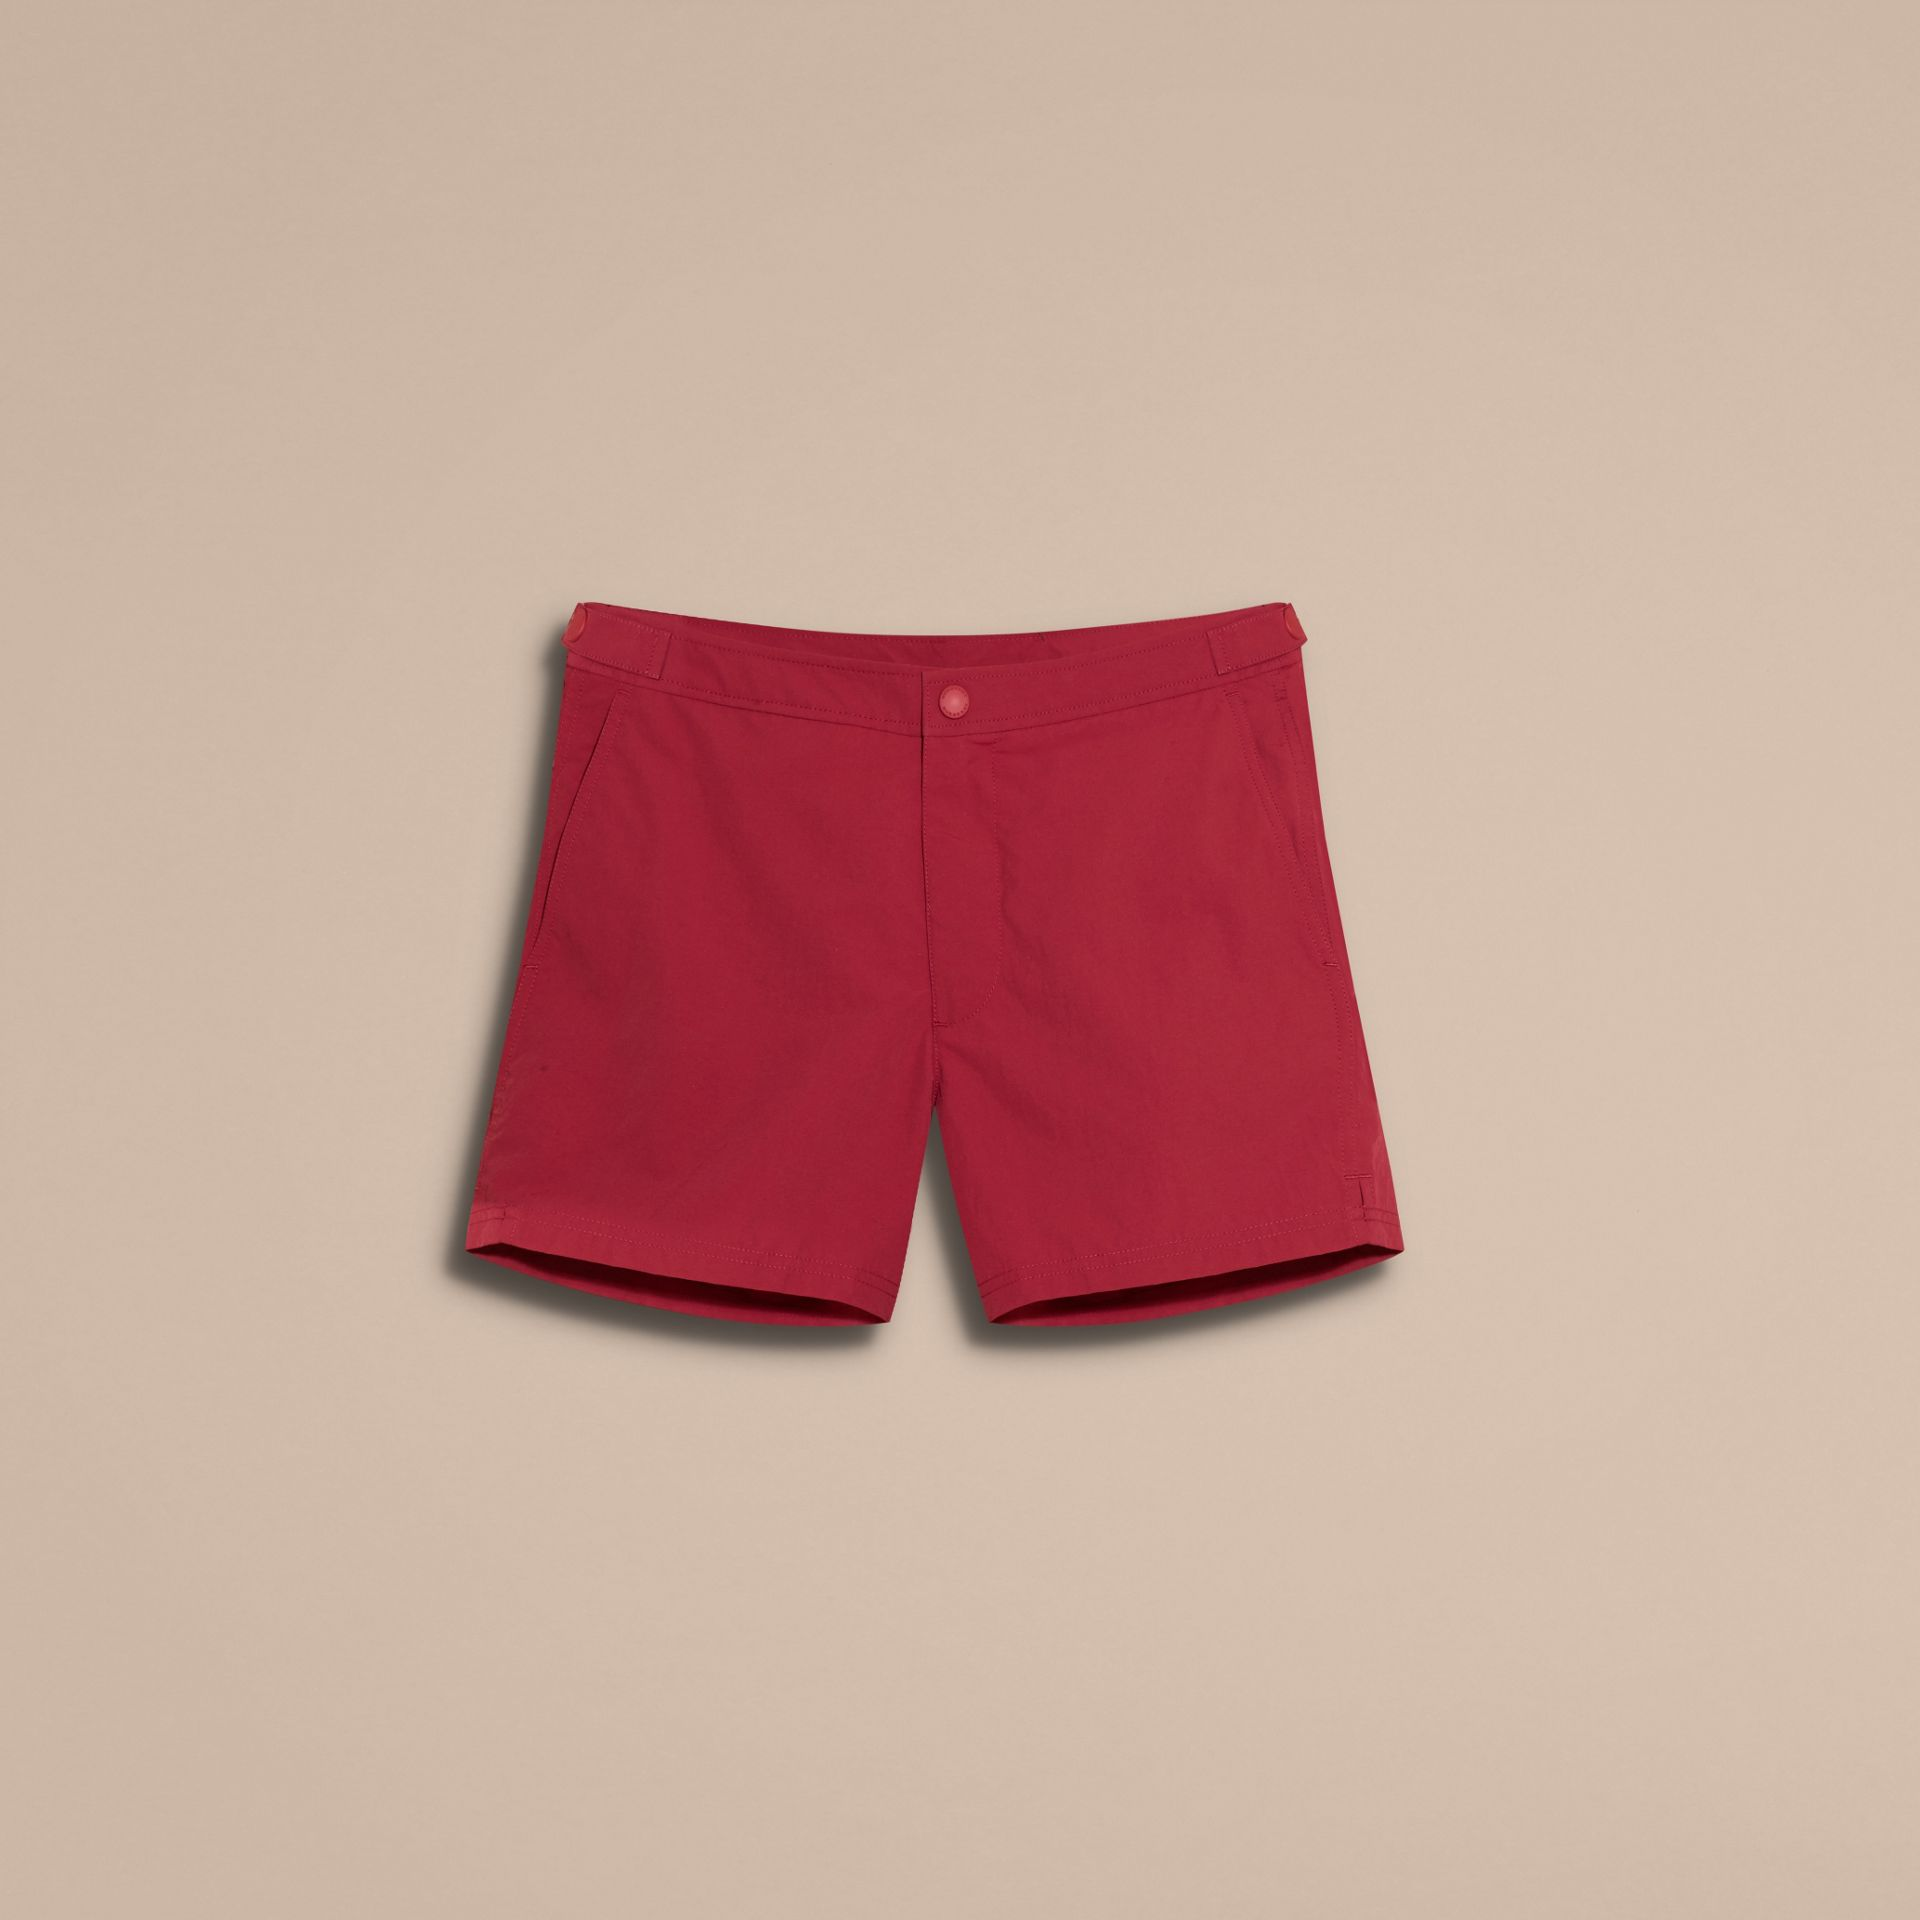 Tailored Swim Shorts in Parade Red - Men | Burberry Hong Kong - gallery image 4